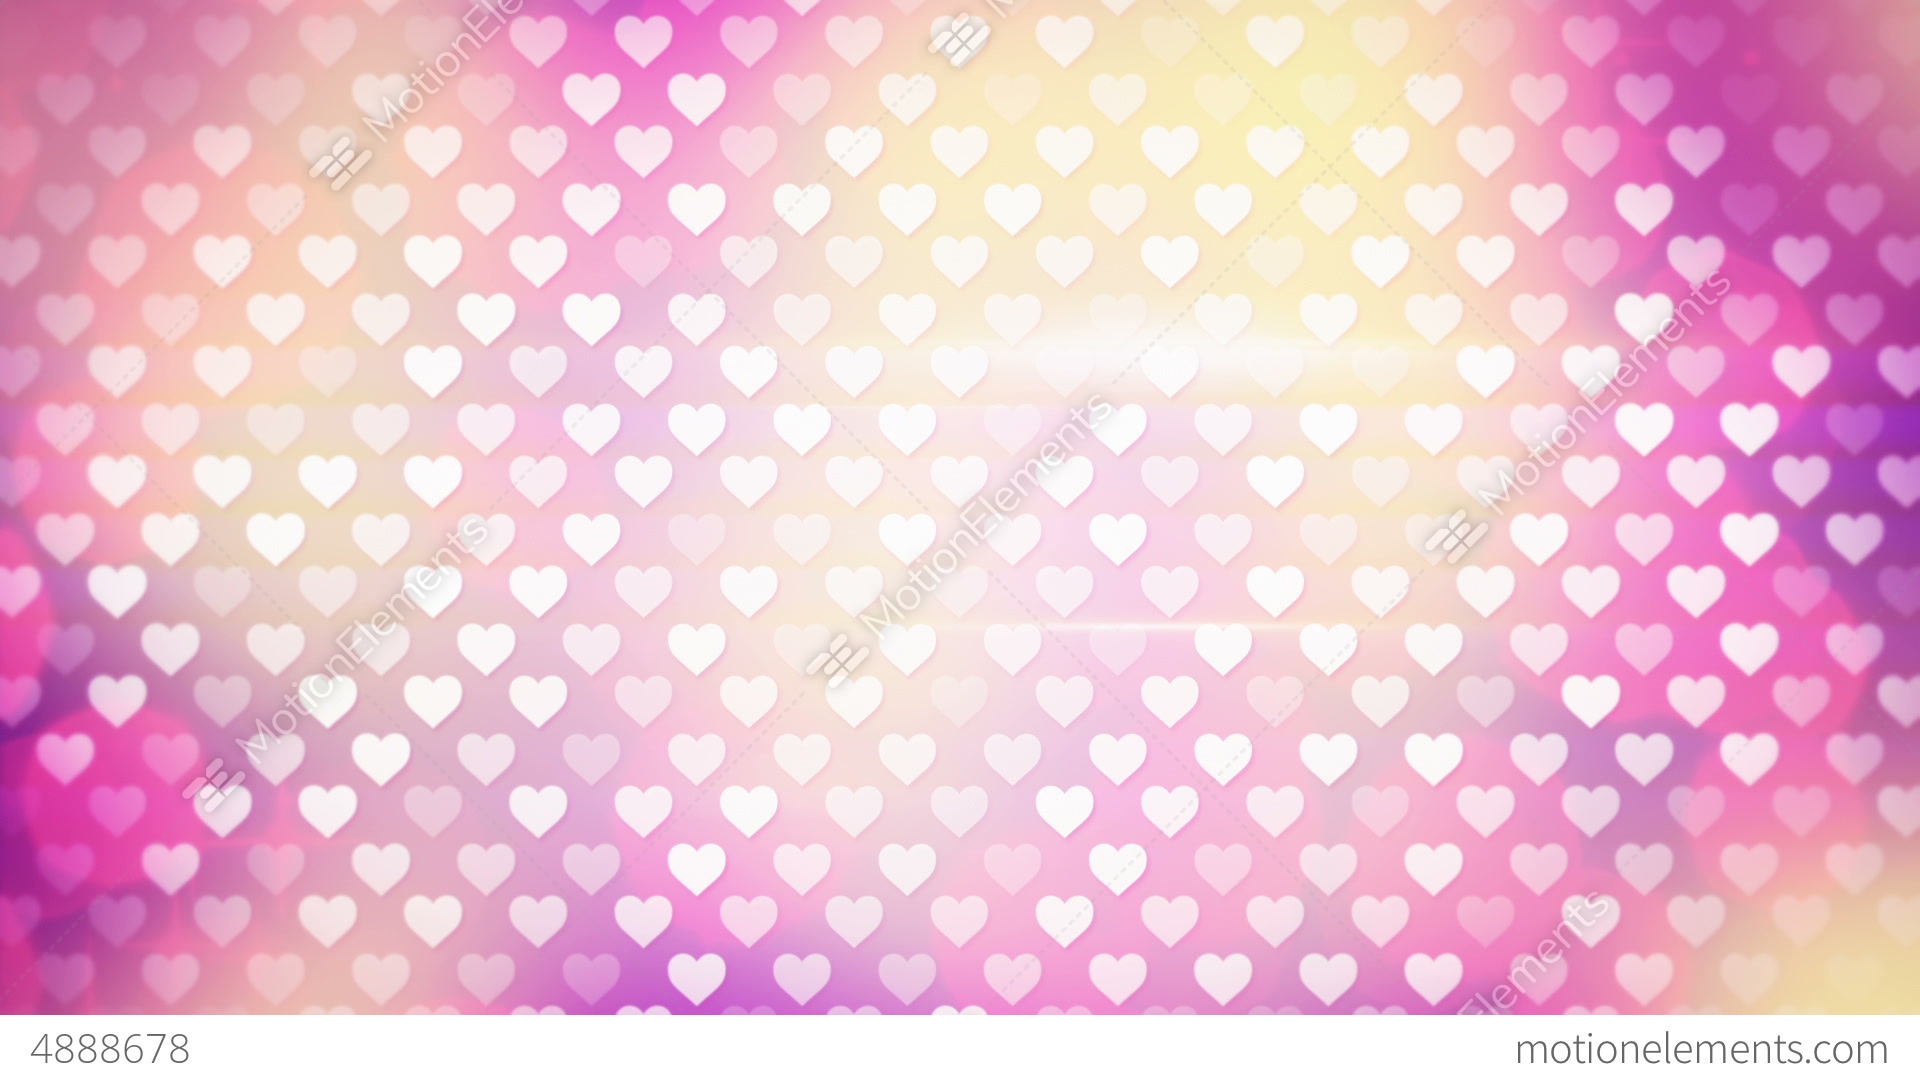 Polka Dot Hearts Loopable Background Stock Animation